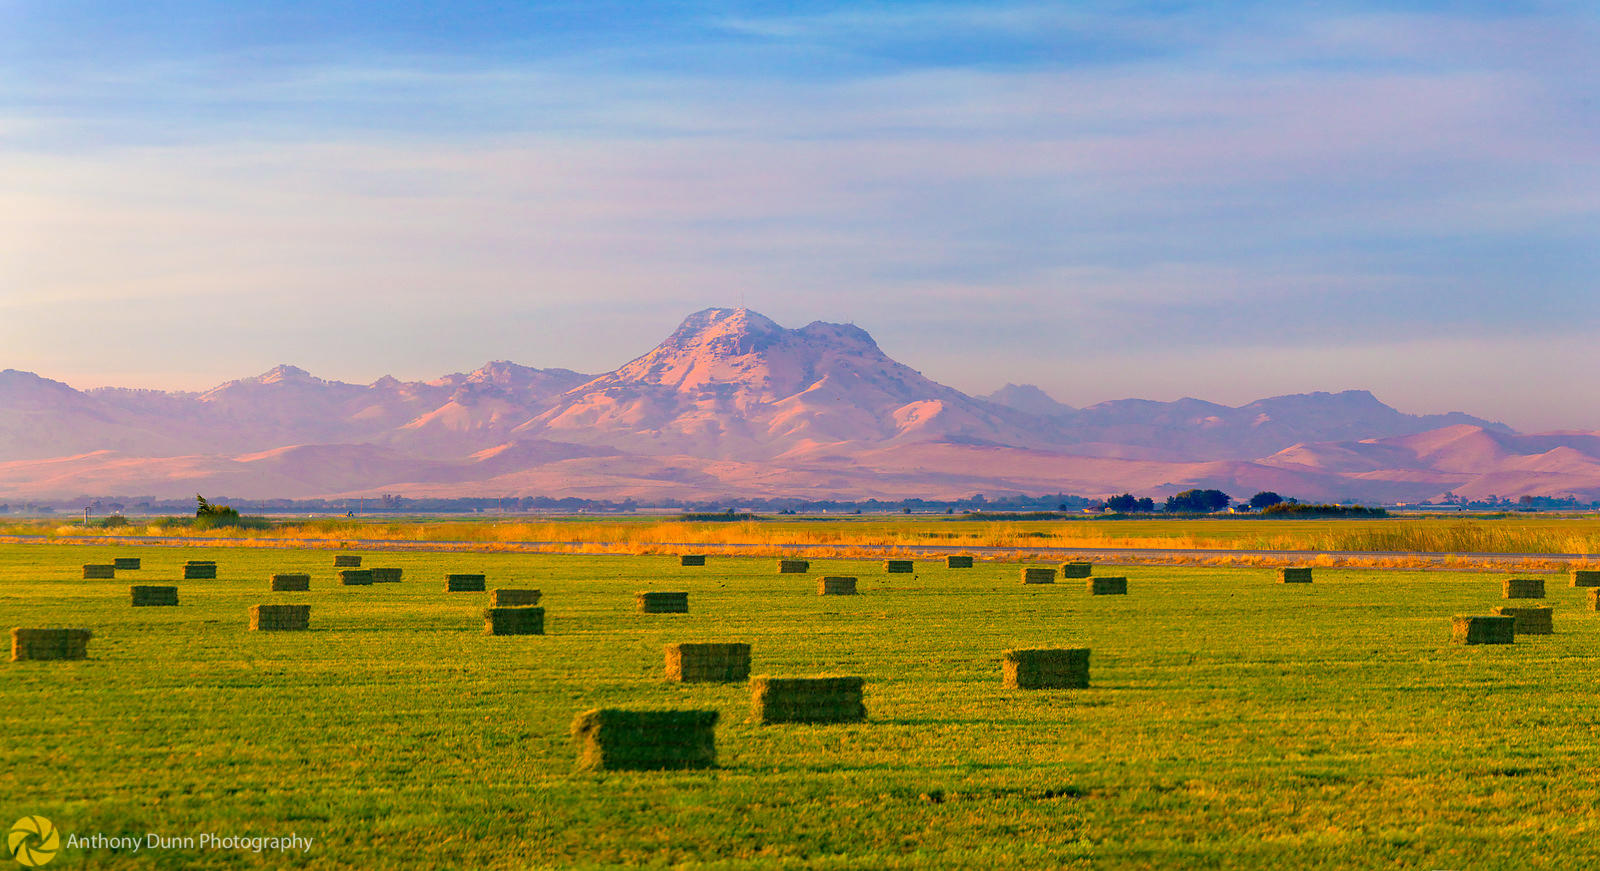 Baled hay under the Sutter Buttes